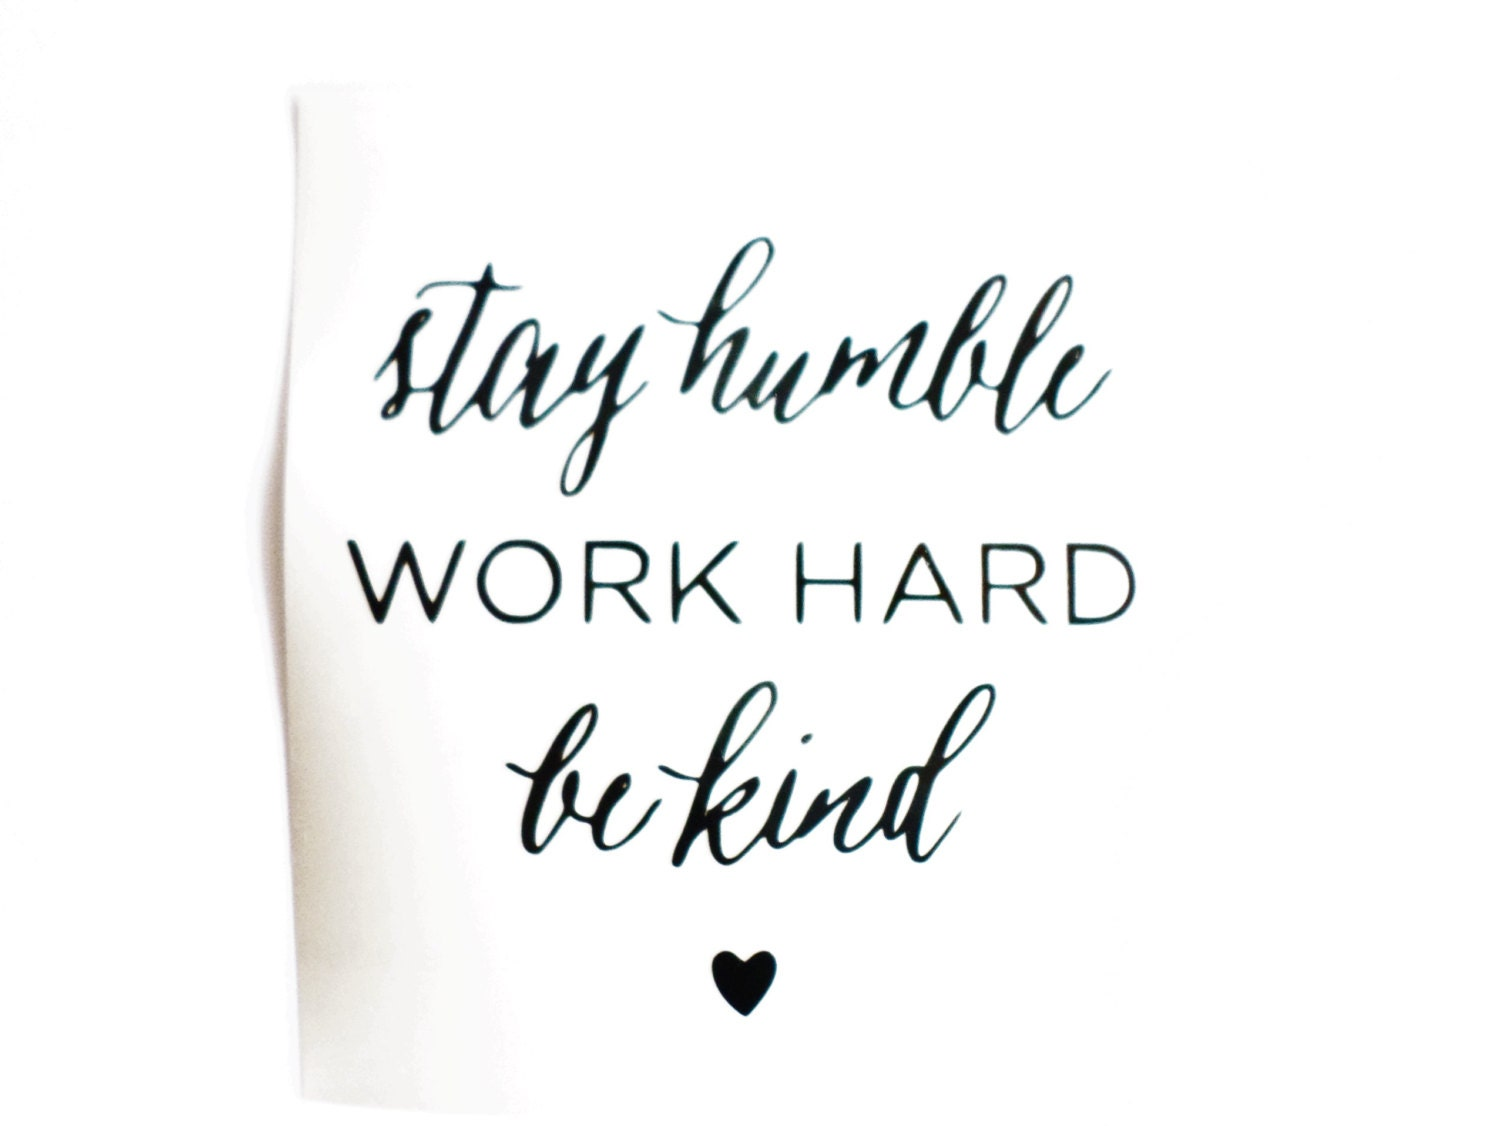 Stay humble work hard be kind decal Inspirational decals Vinyl